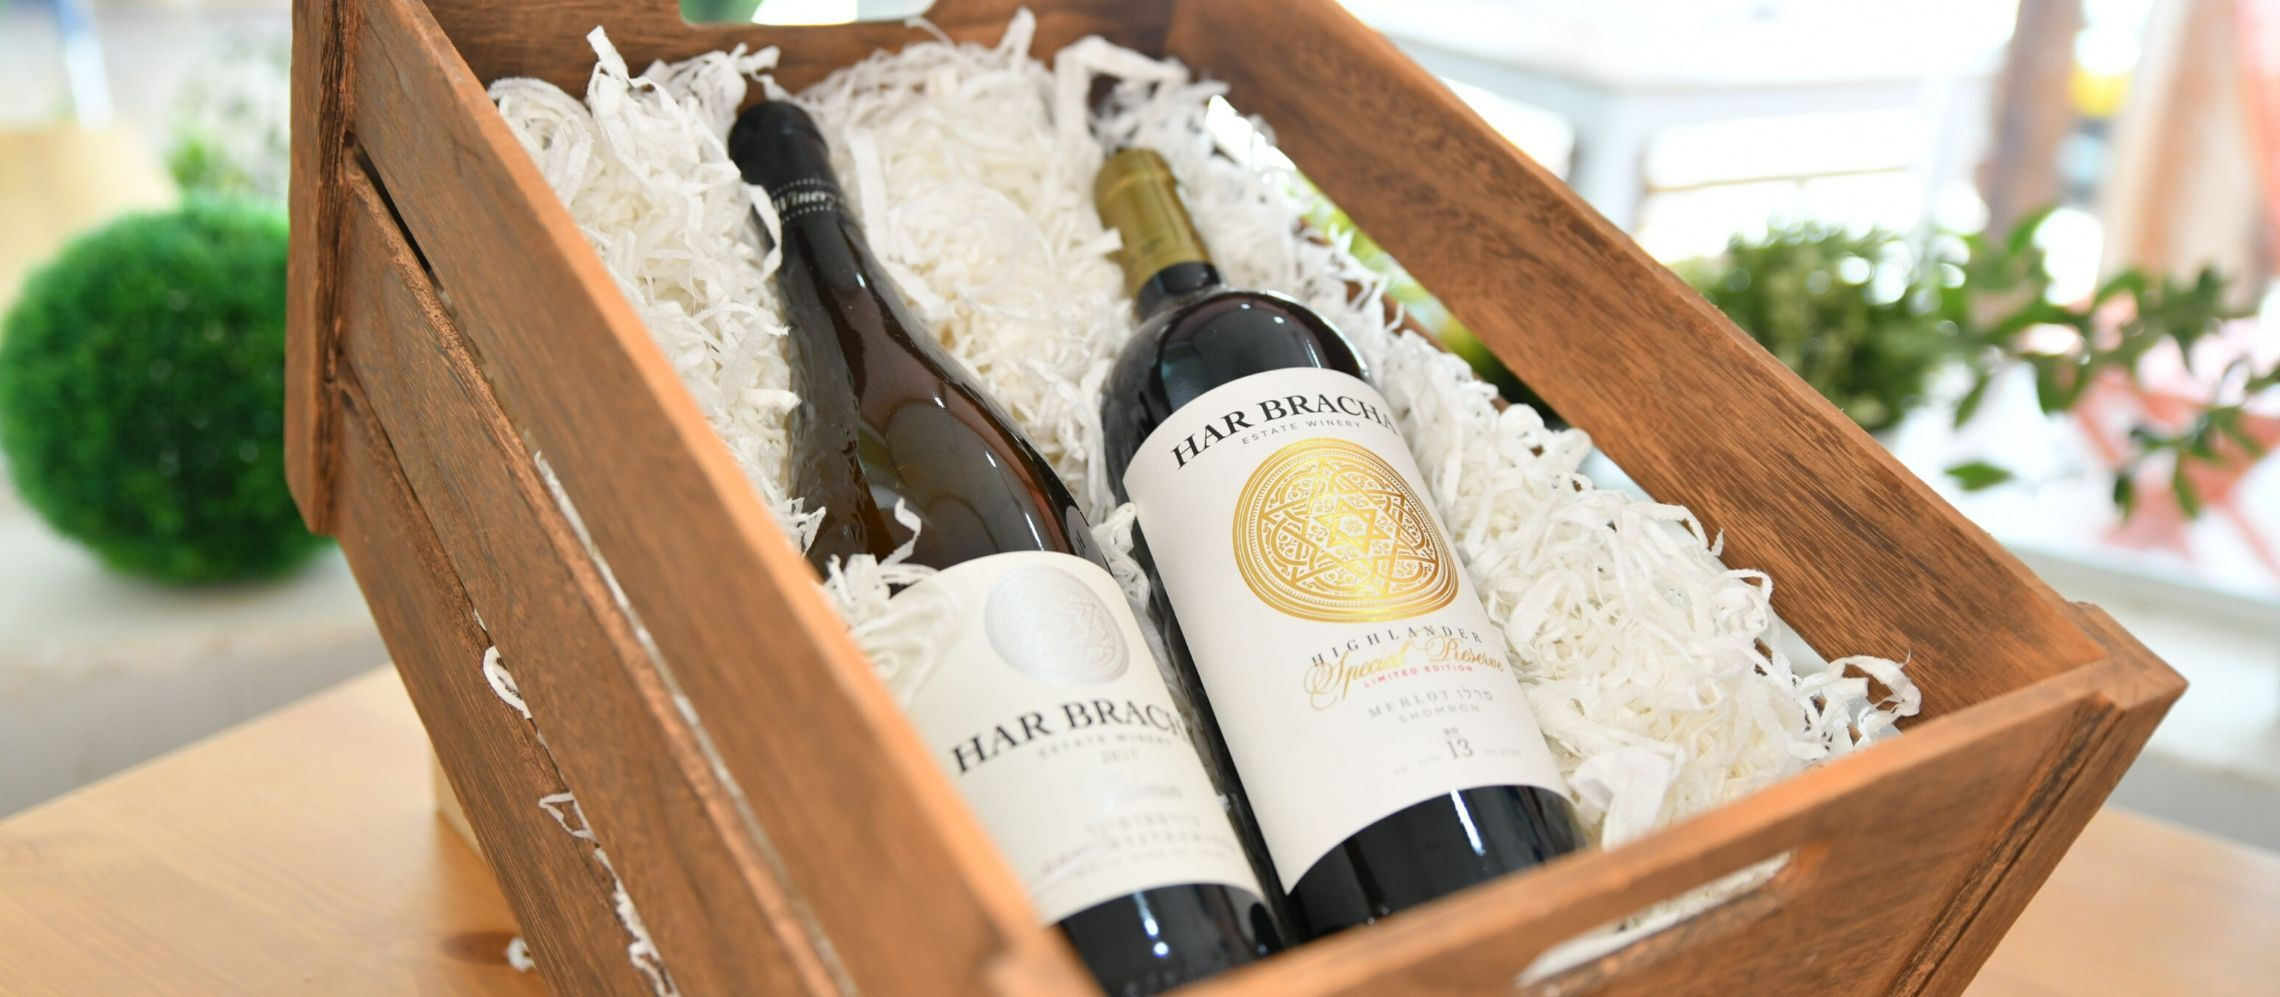 Photo for: 10 Best Wine Delivery Services in UK